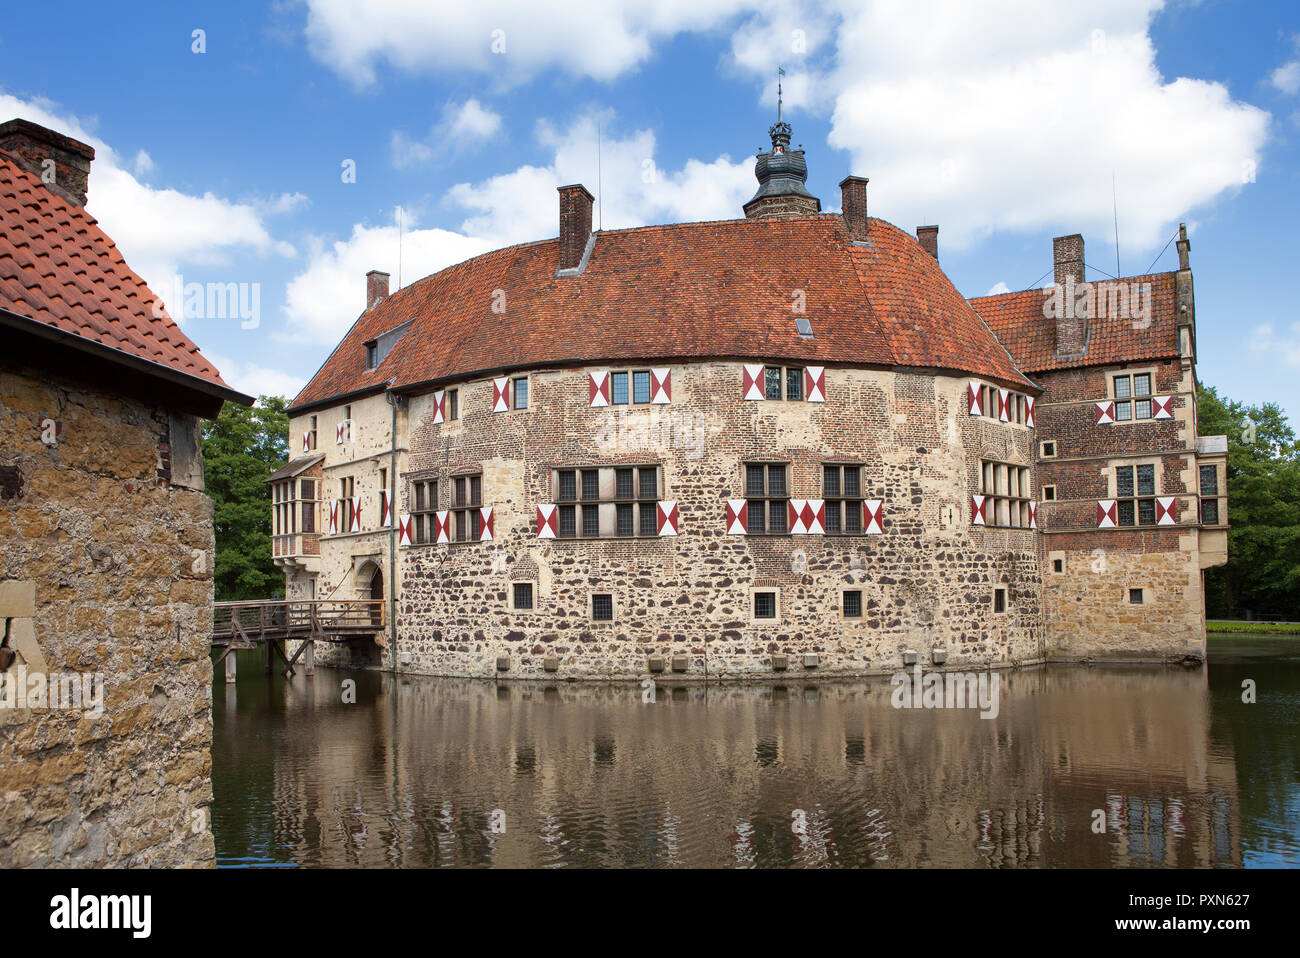 Vischering, moated castle, North Rhine-Westphalia, Germany; Europe - Stock Image